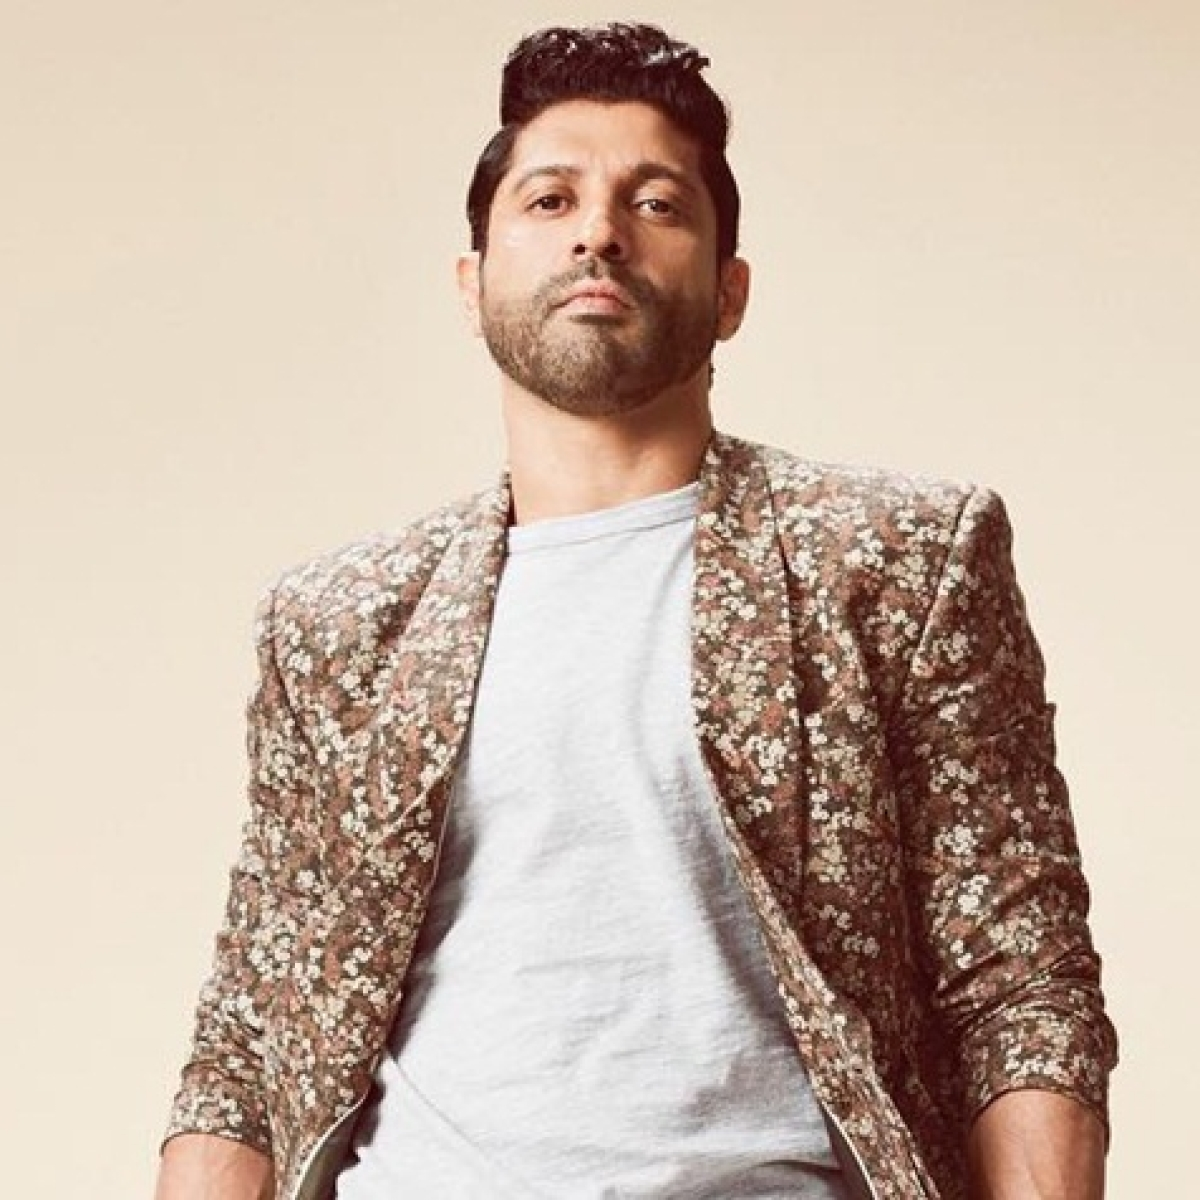 CAA Protests: Senior IPS officer accuses Farhan Akhtar of 'waging war against the state'